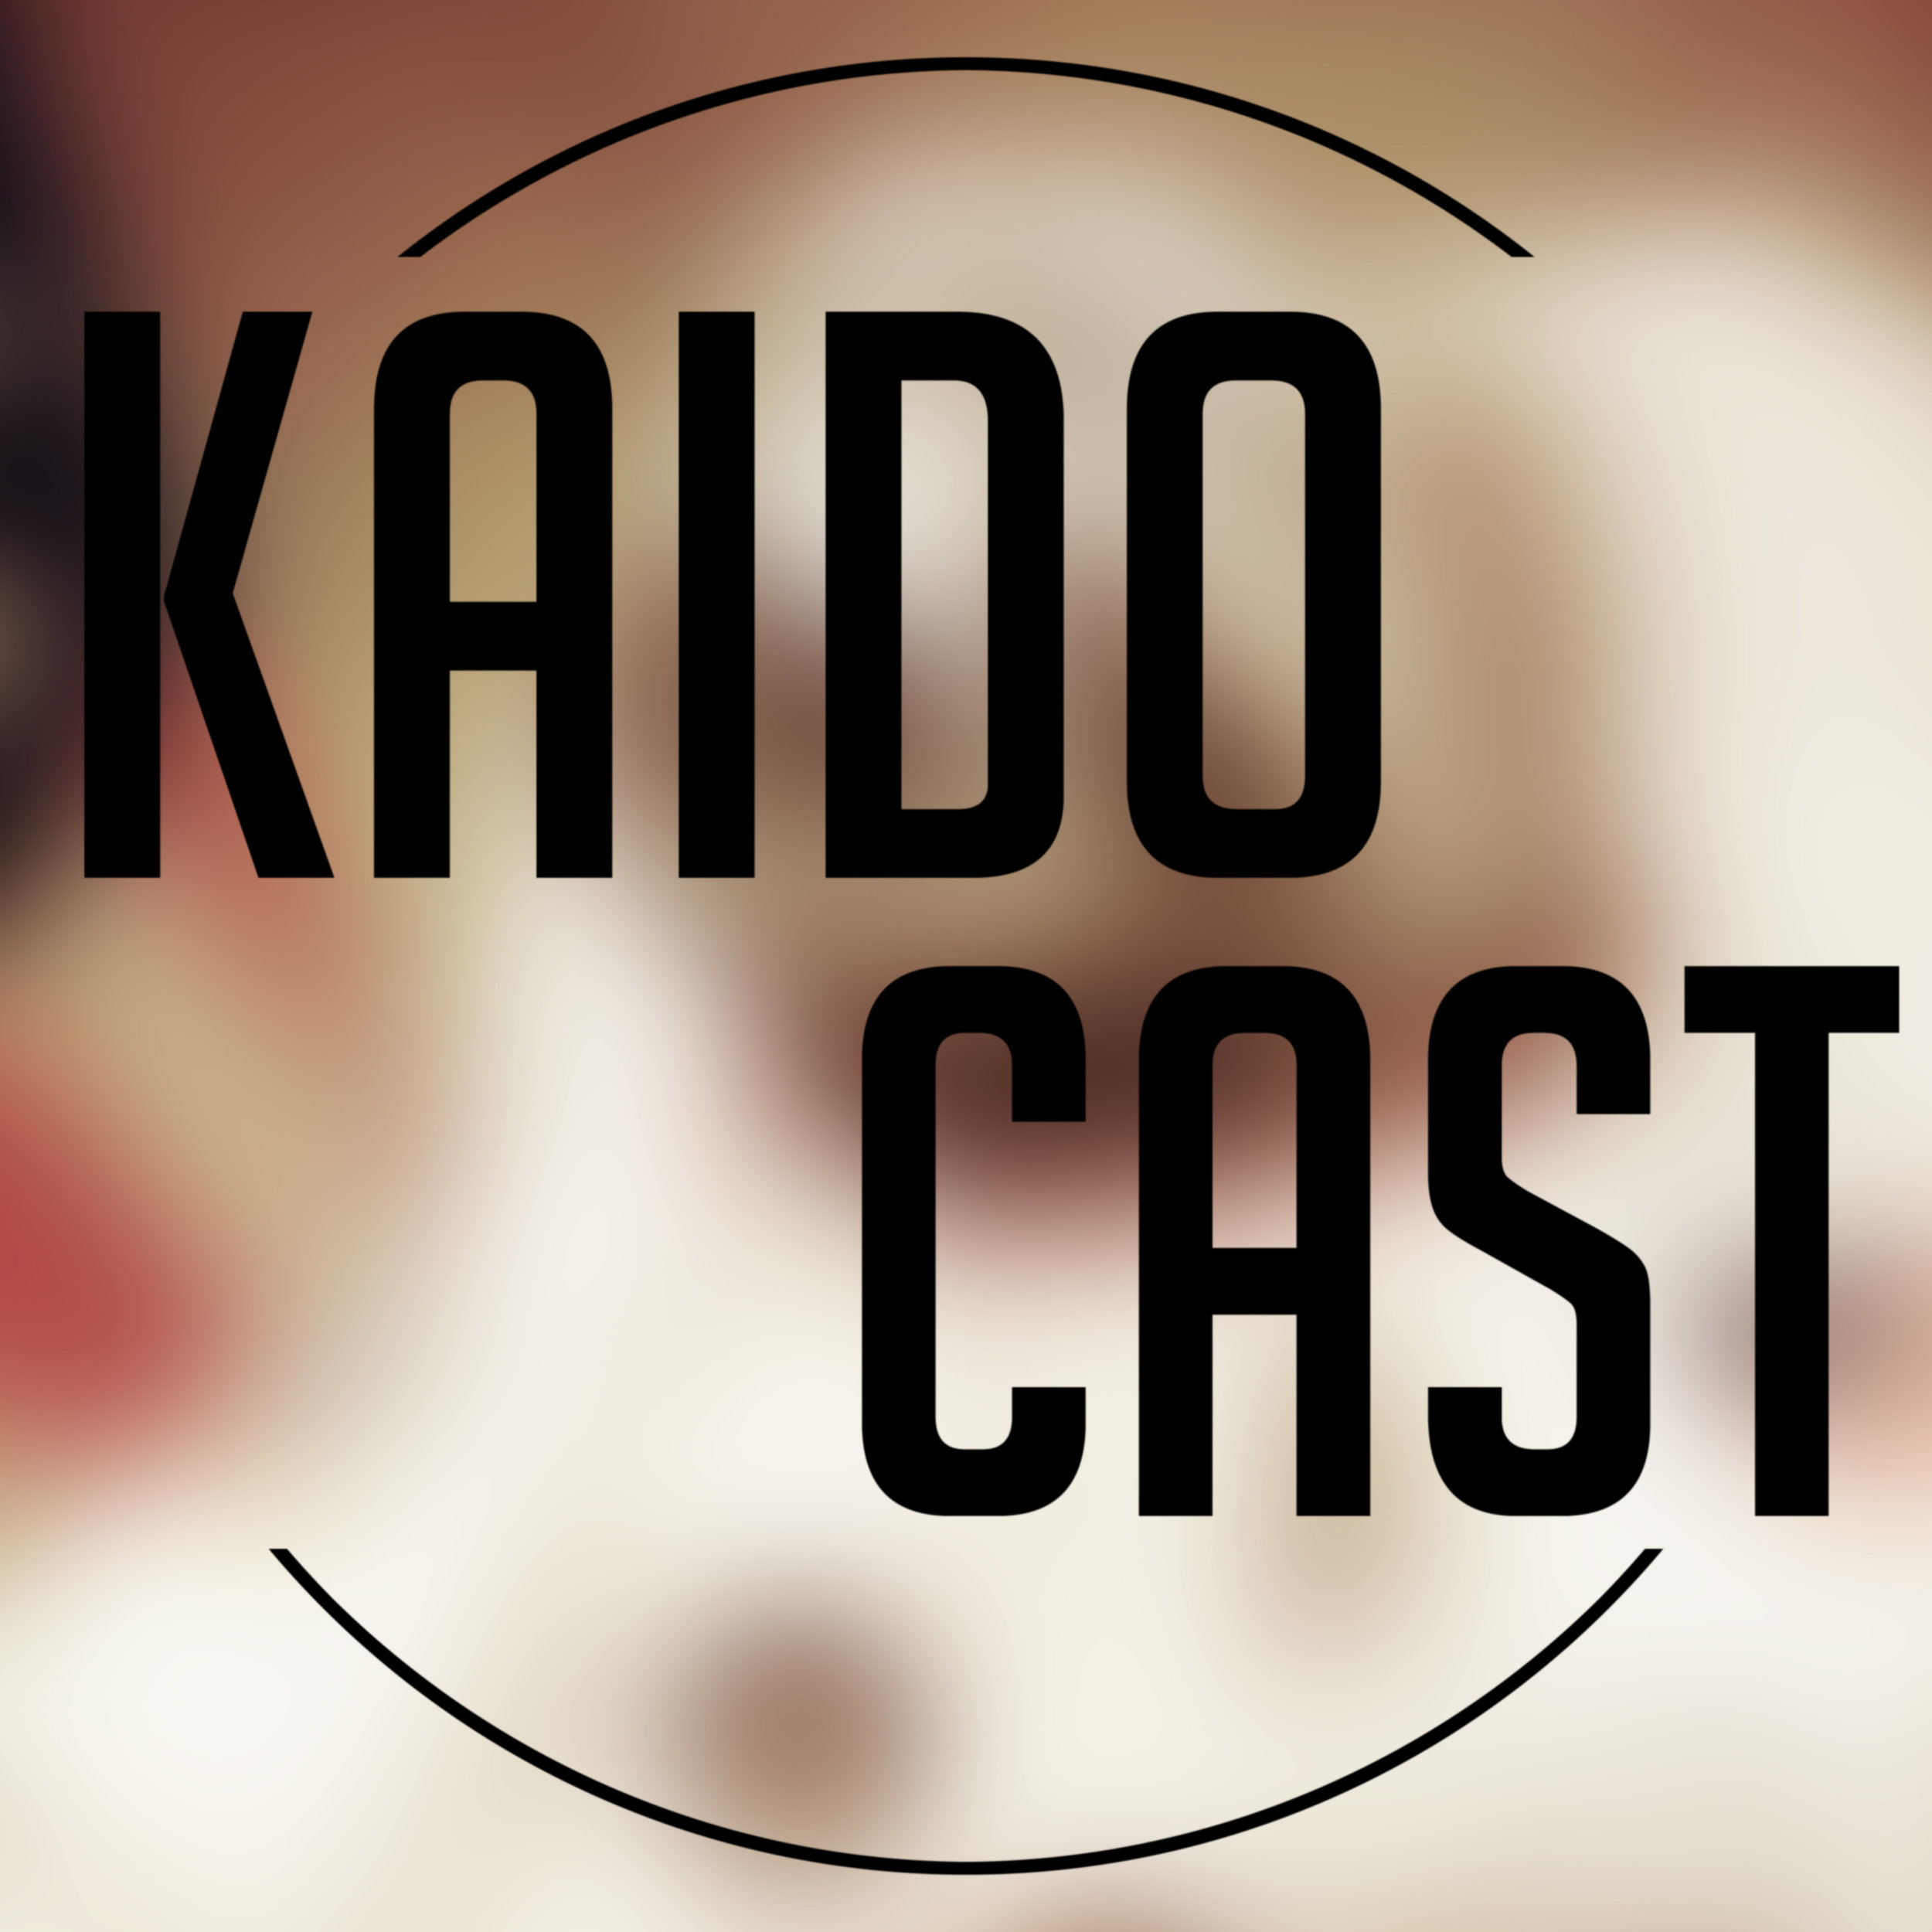 KAIDO Cast 23 - It's DOOM Baby - Zac and Rob tackle another quick week in gaming, while also discussing DOOM on the Switch, Shadow of War, and Super Mario Odyssey.